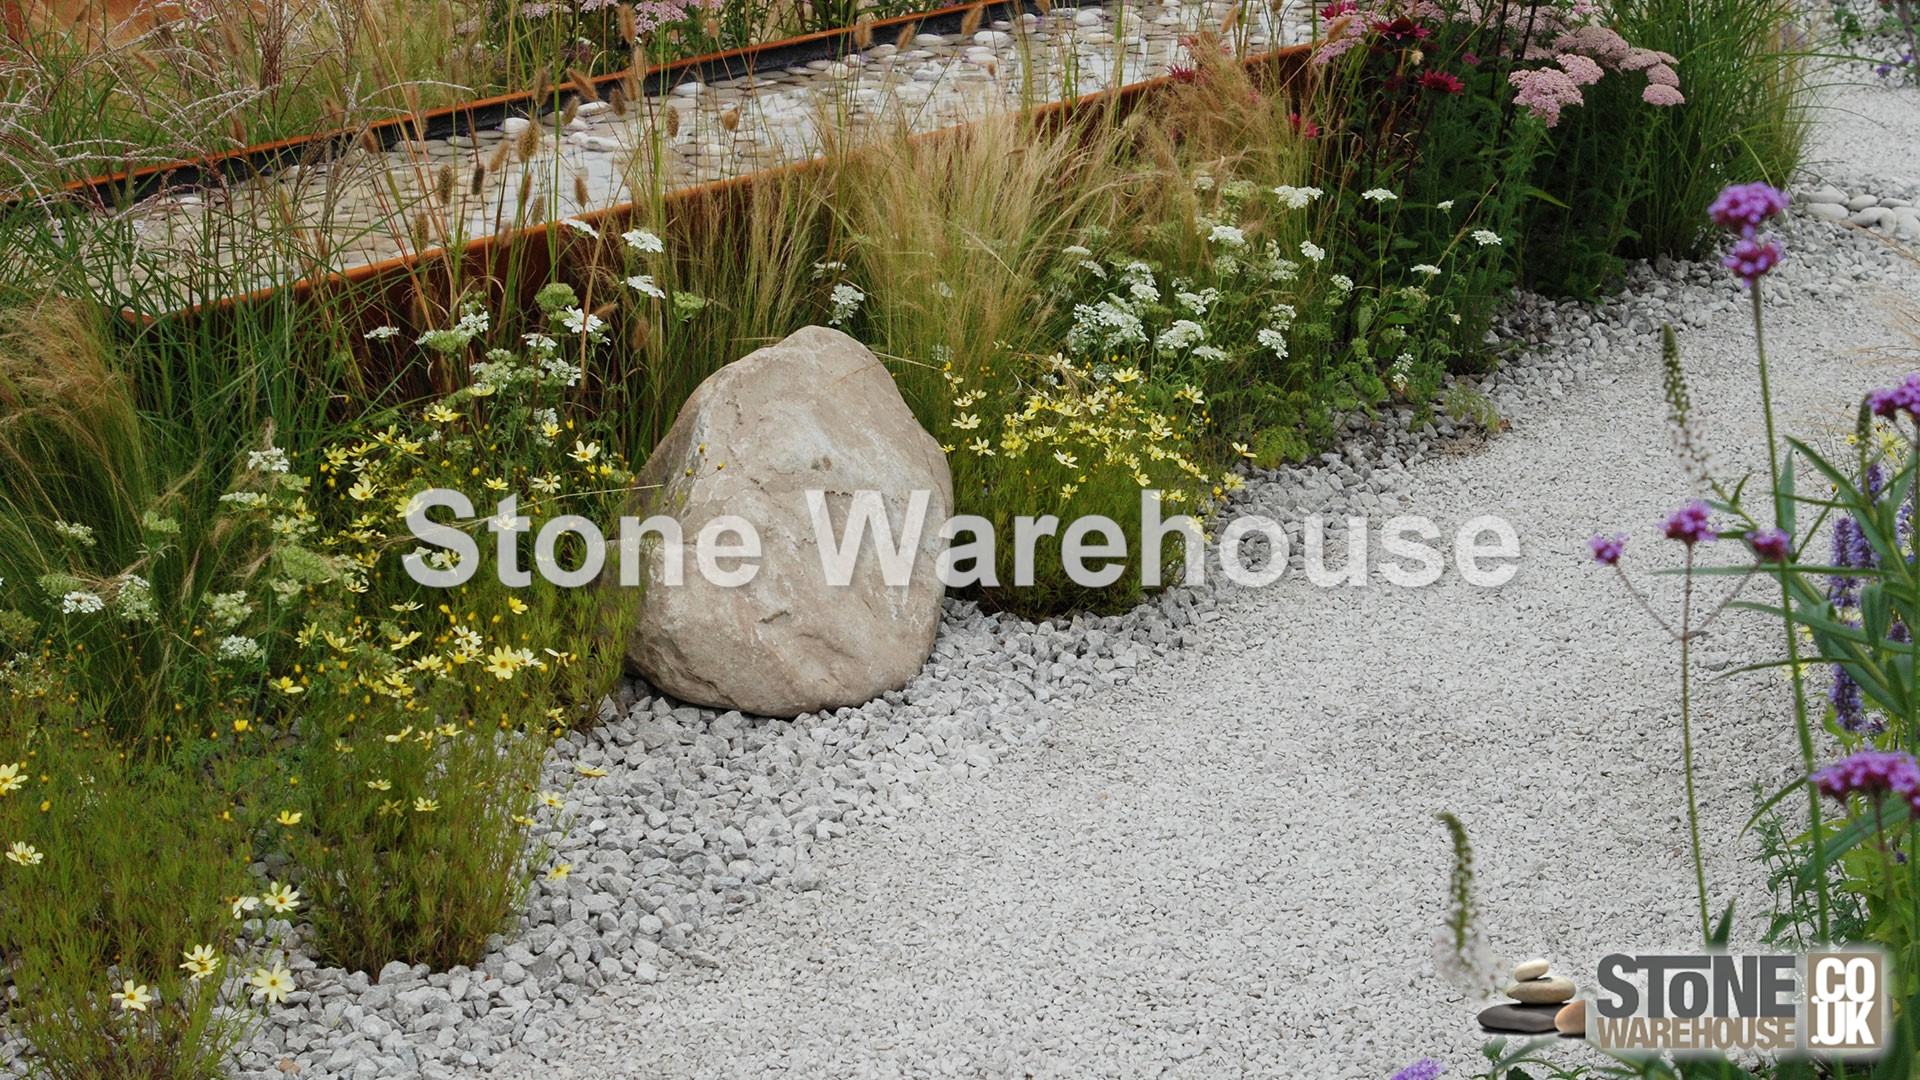 Stone Warehouse